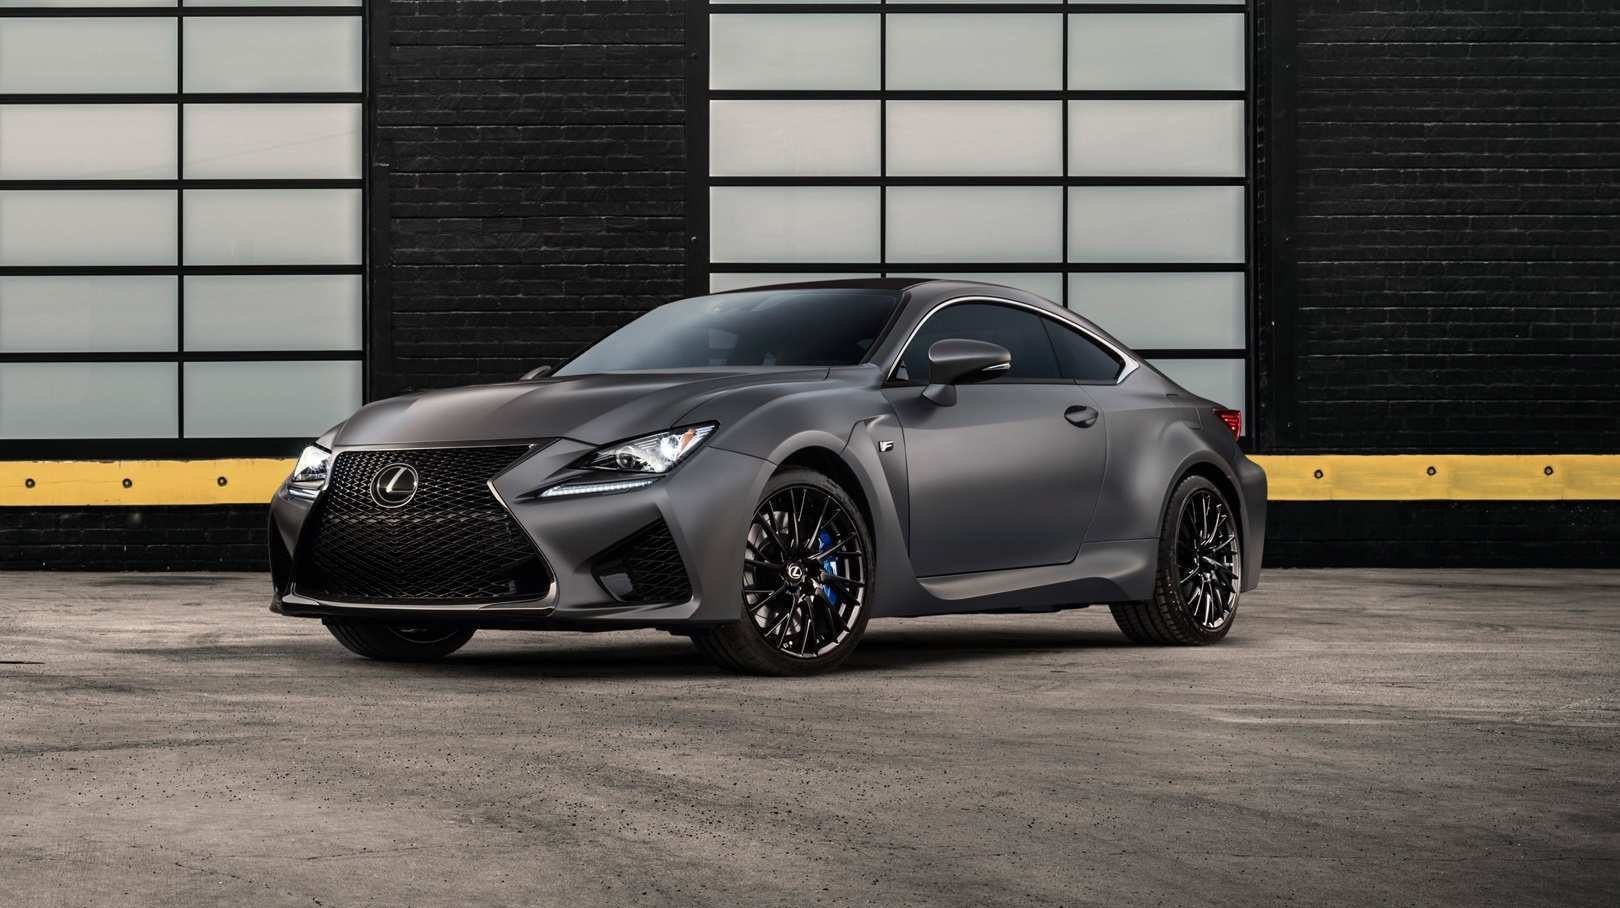 45 The Best Rcf Lexus 2019 Model